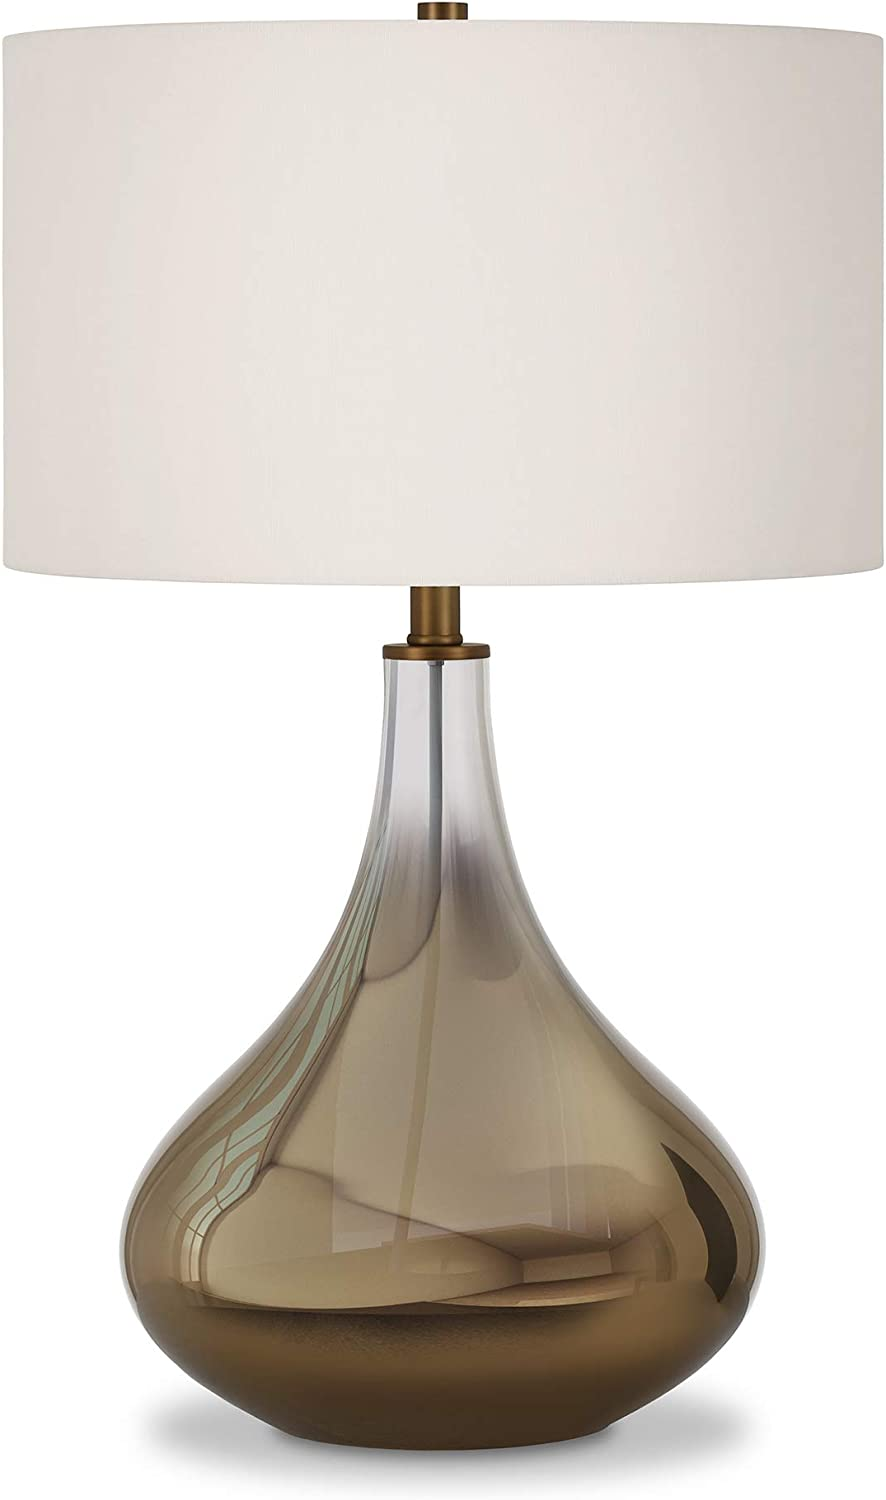 Henn&Hart TL0027 Glass Ombre Lamp One Size Brass